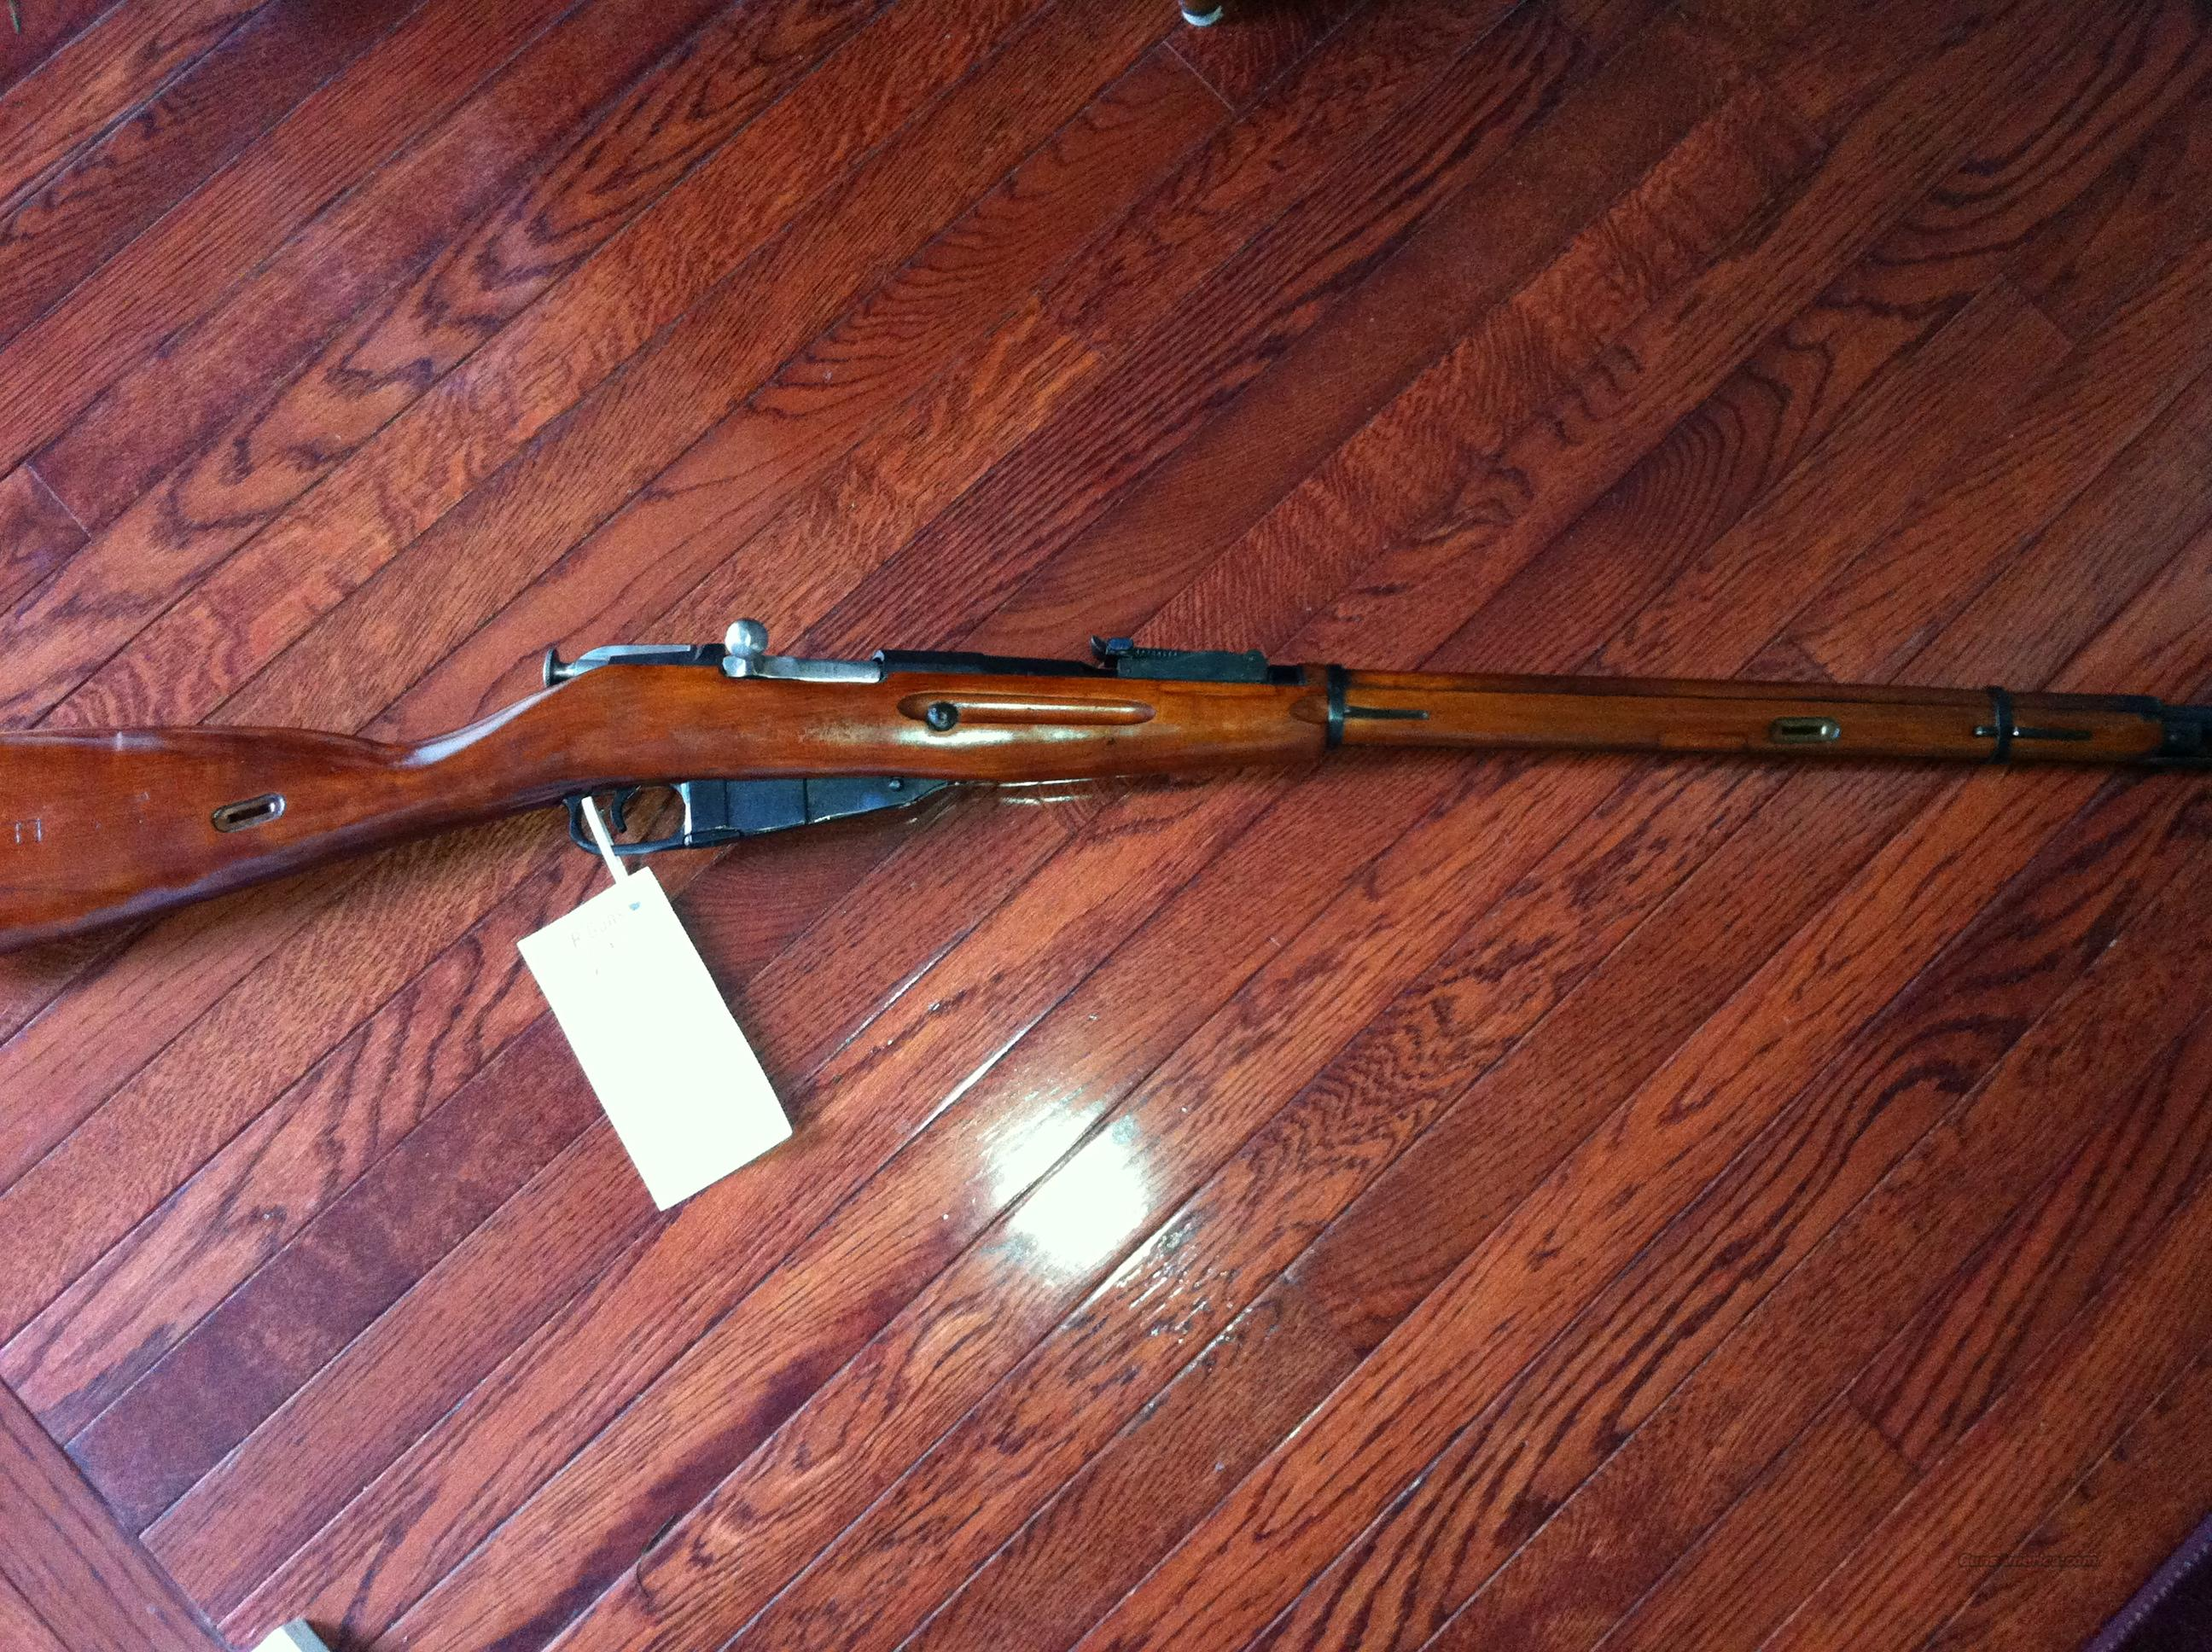 Russian 1891/30 7.62x54R  Mosin Nagant Rifle  Guns > Rifles > Mosin-Nagant Rifles/Carbines